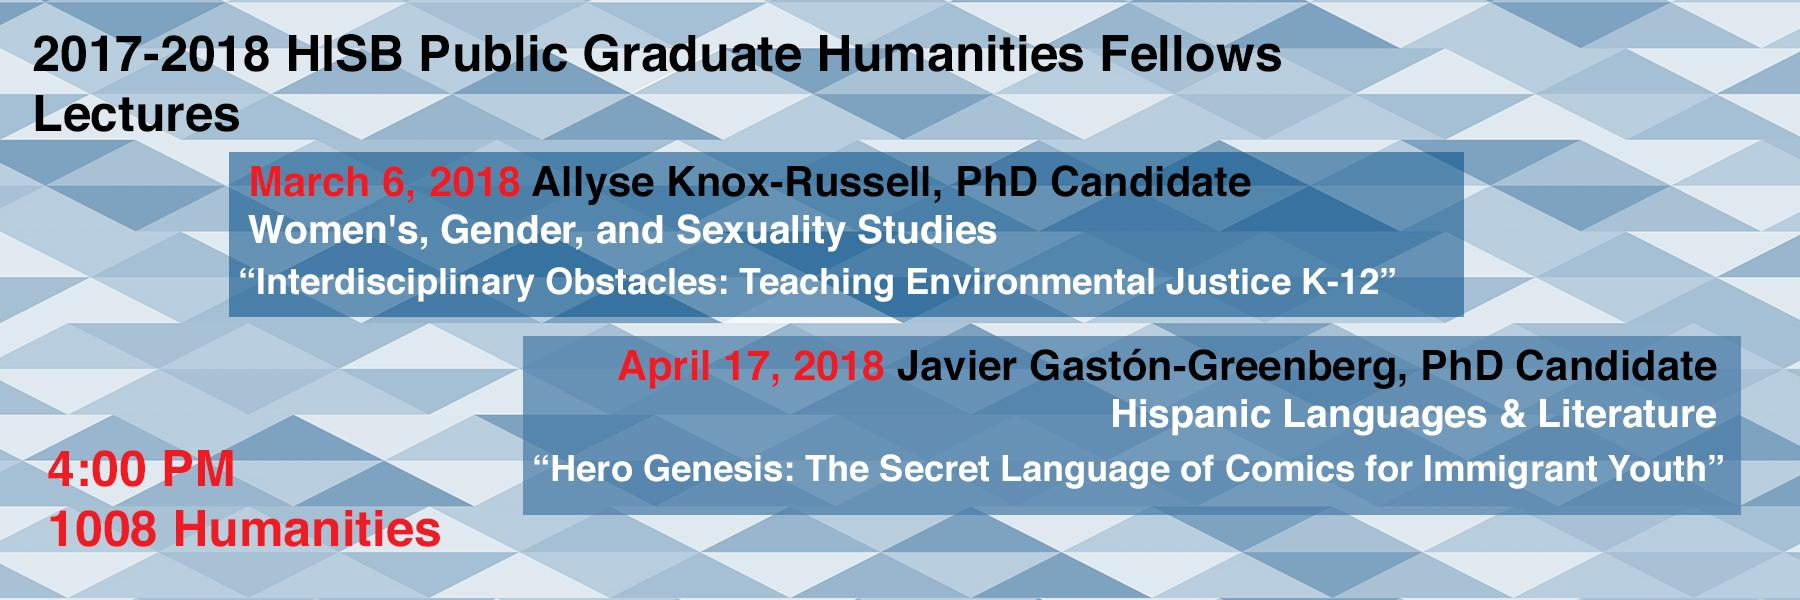 HISB Public Graduate Humanities Fellows lectures